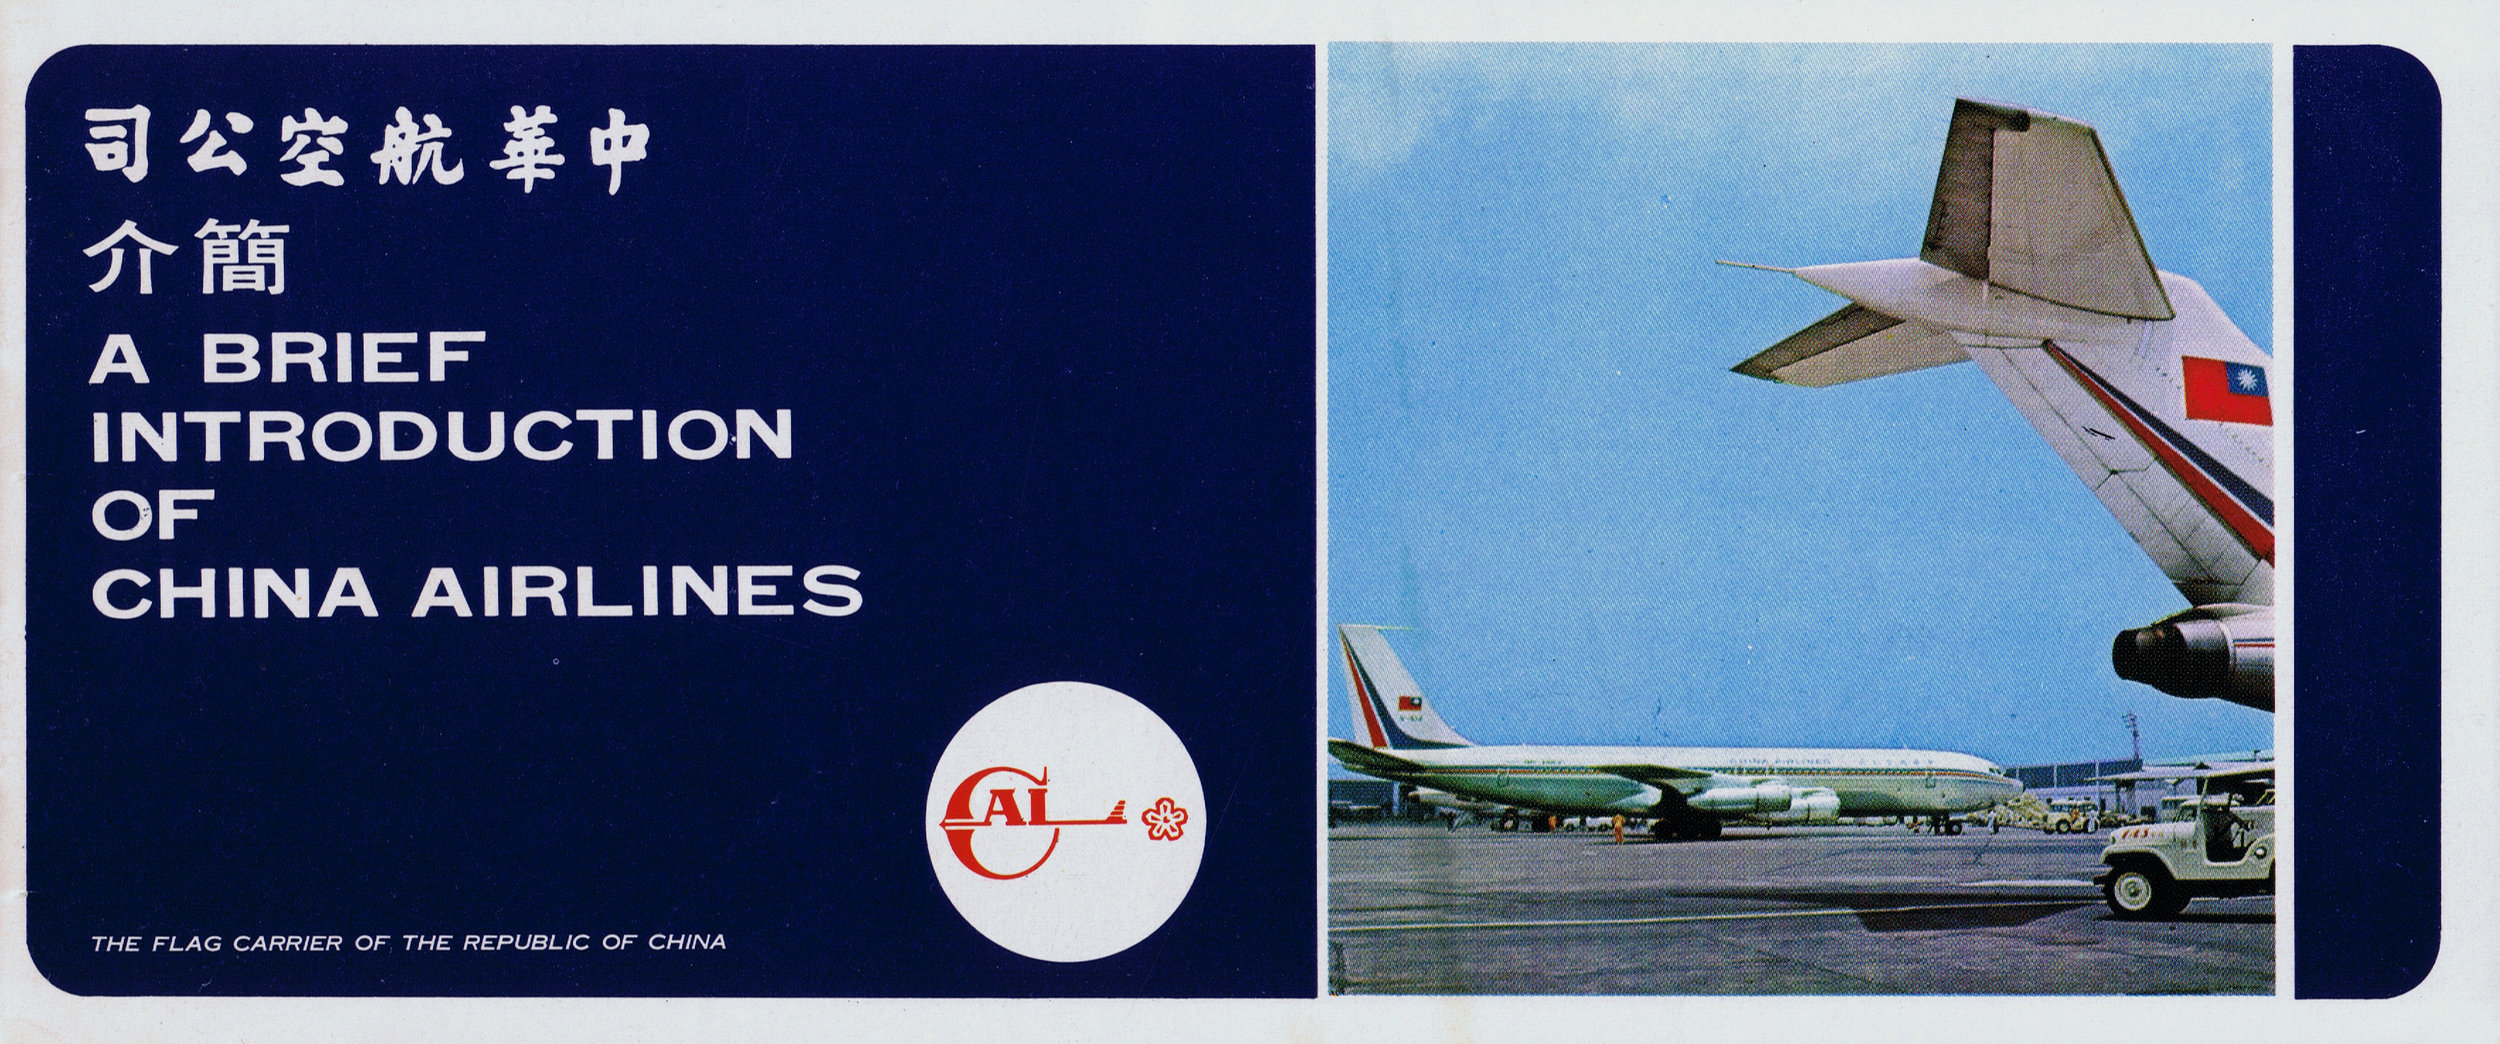 China Airlines Introduction.jpg